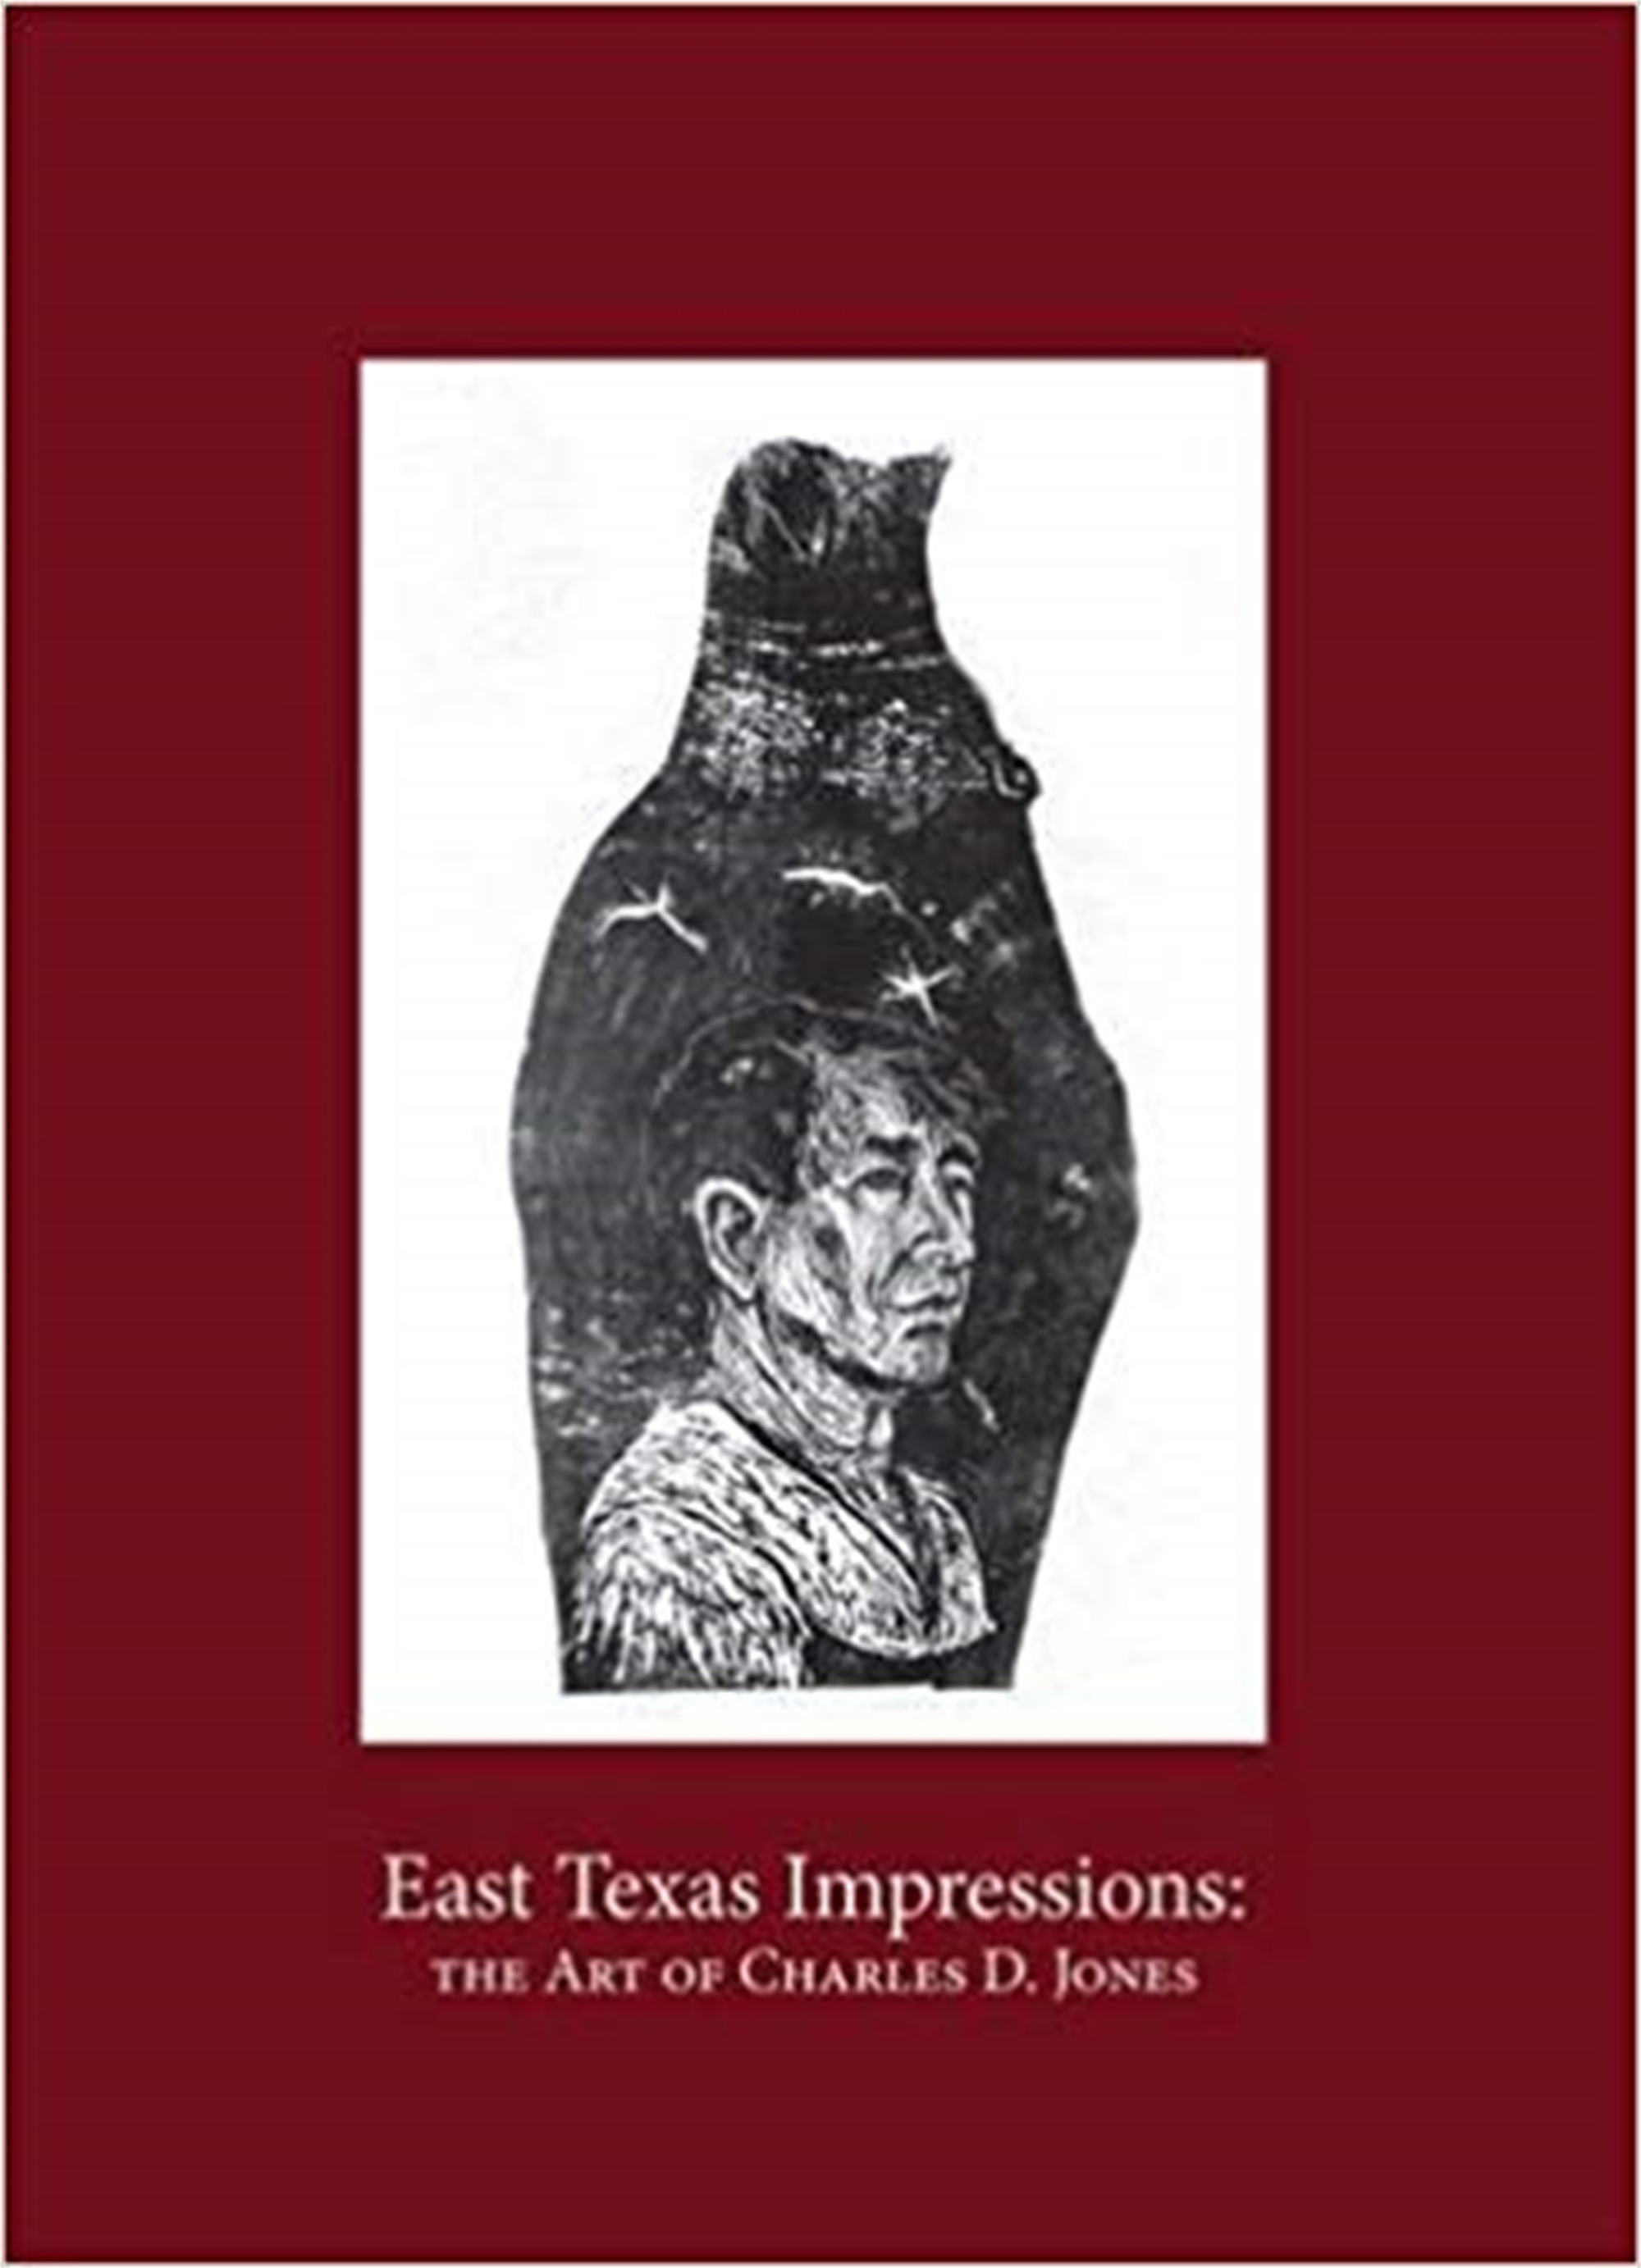 East Texas Impressions by Charles Jones